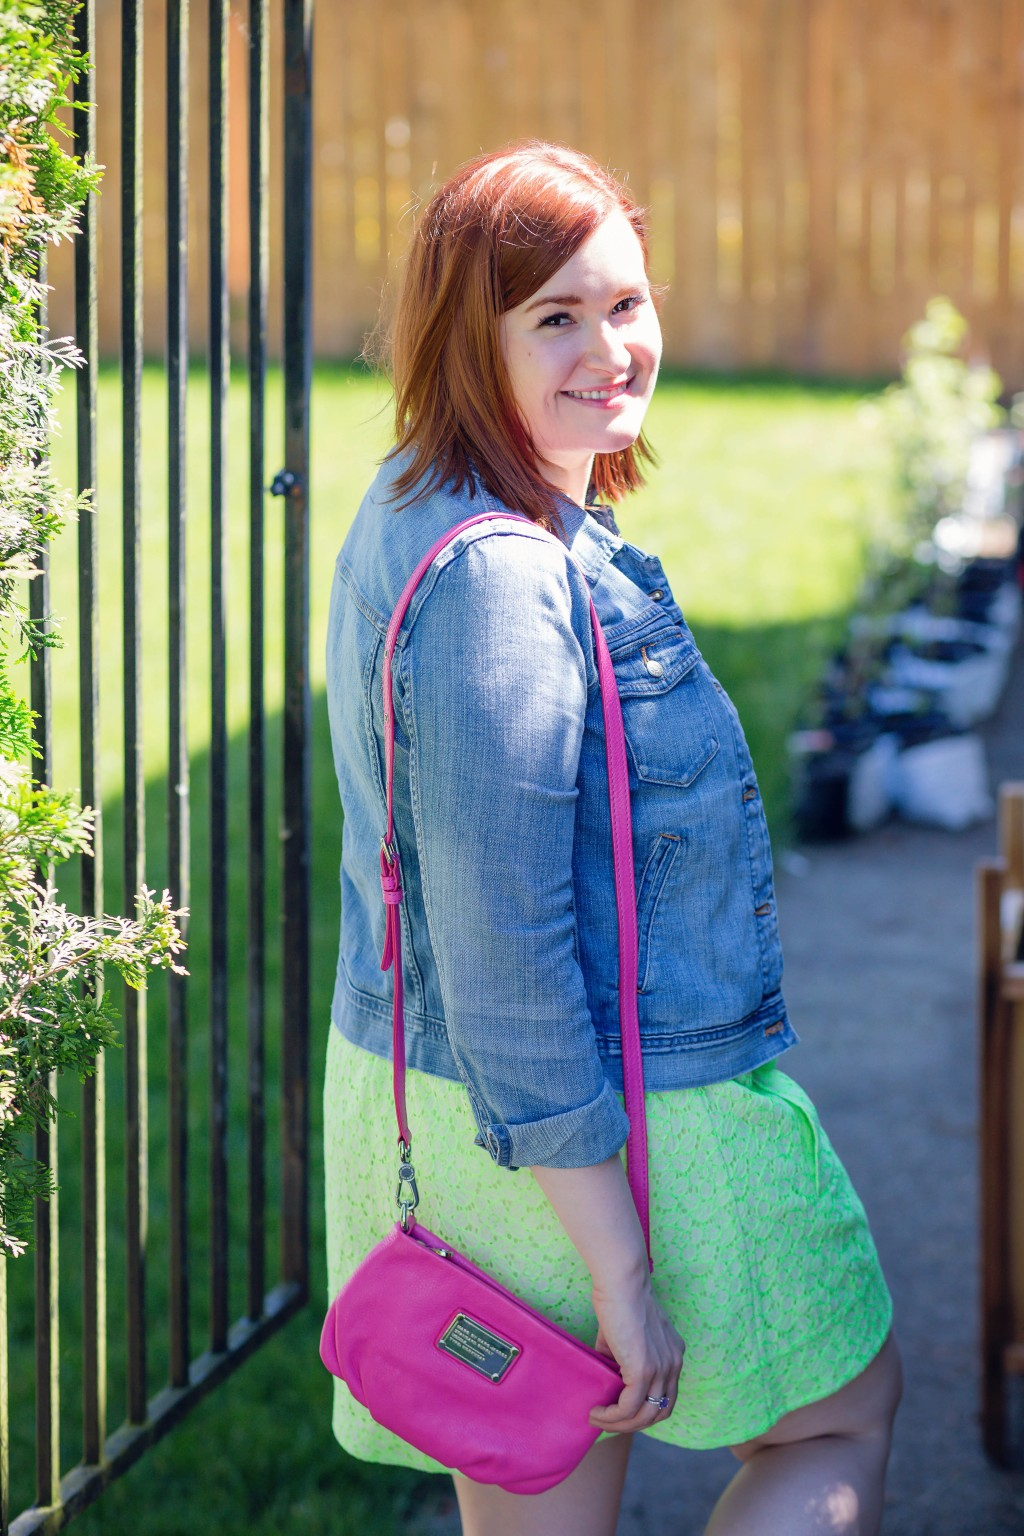 10 - jean jacket with neon colors for summer